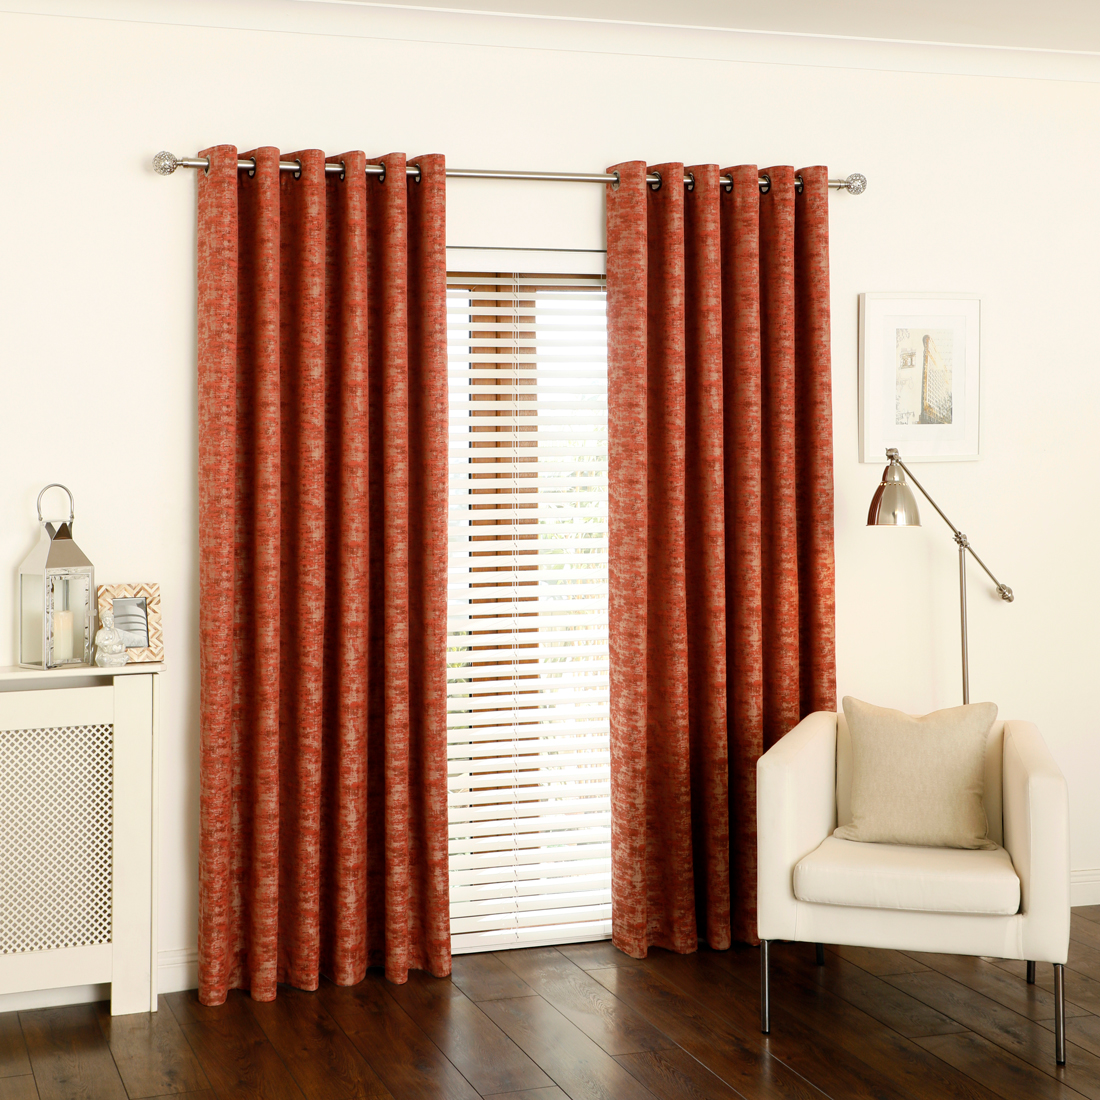 Parkin Spice Eyelet Curtains